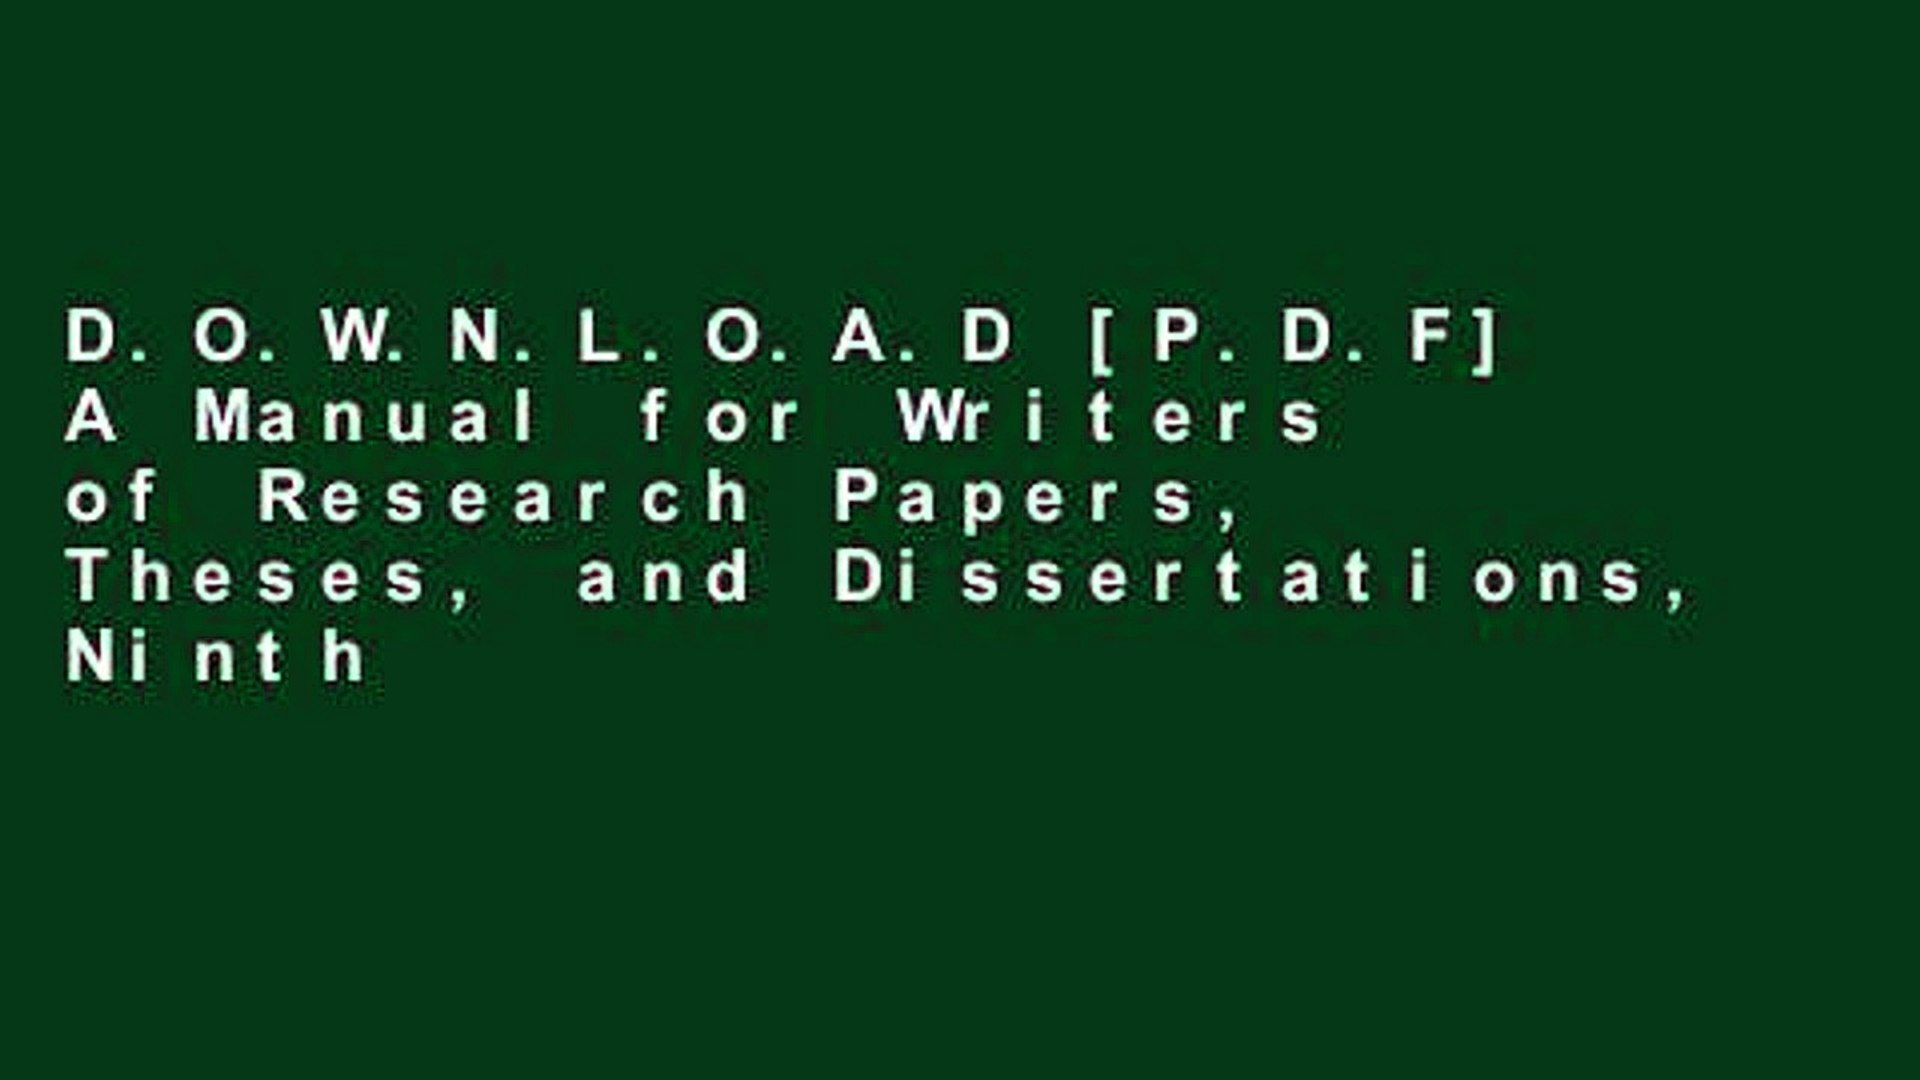 025 Manual For Writers Of Researchs Theses And Dissertations X1080 Cmg Sensational A Research Papers Ed. 8 8th Edition Ninth Pdf